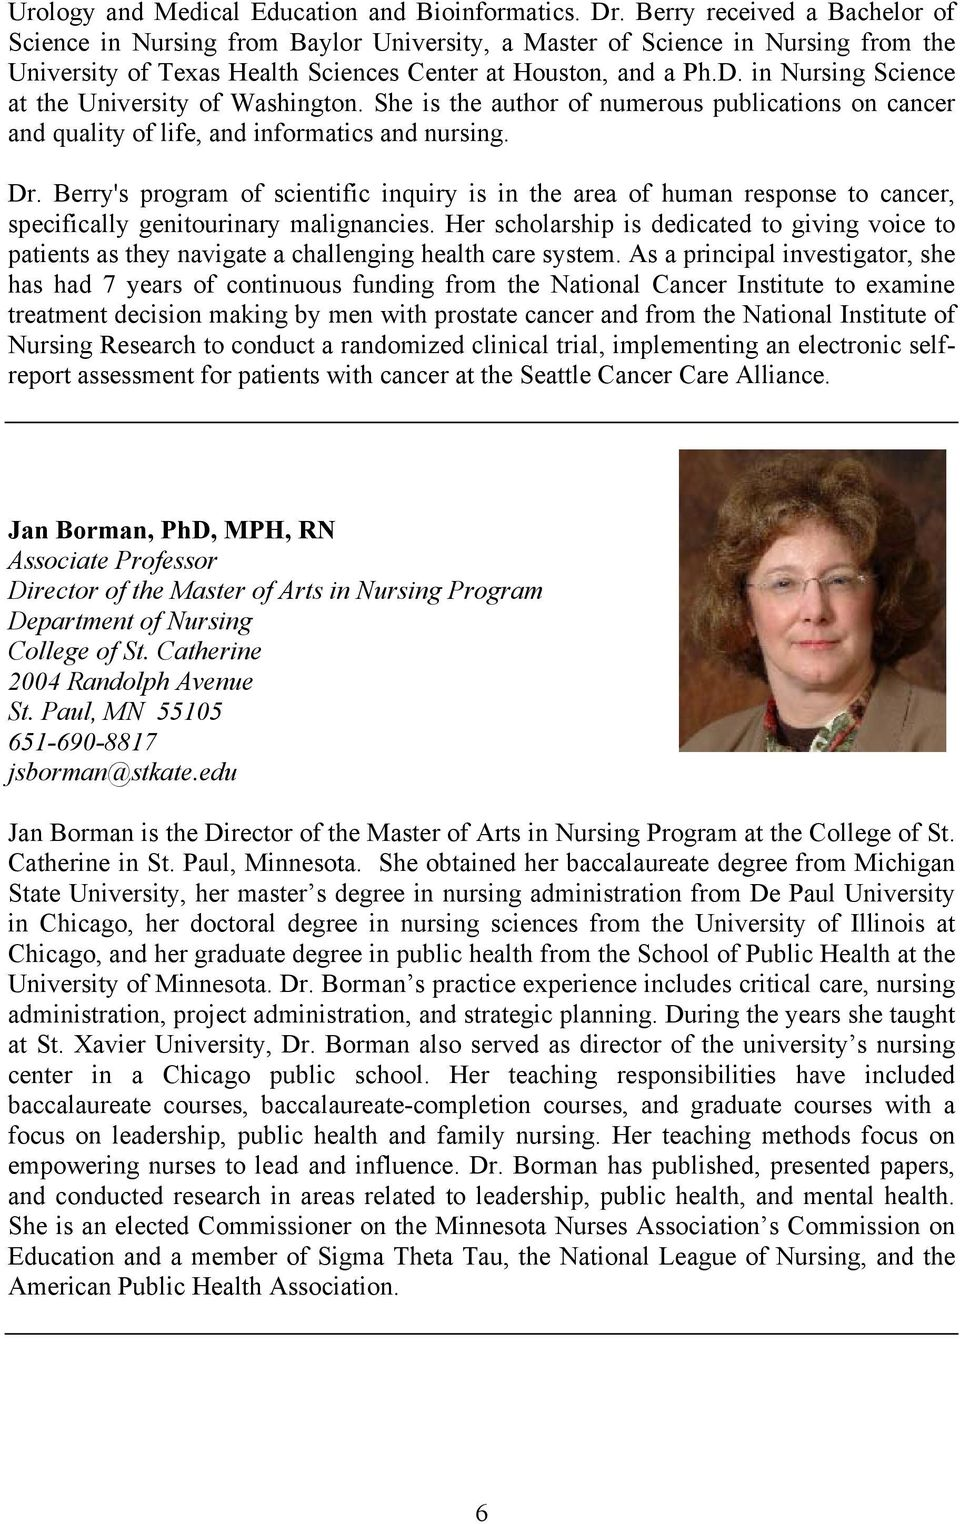 in Nursing Science at the University of Washington. She is the author of numerous publications on cancer and quality of life, and informatics and nursing. Dr.